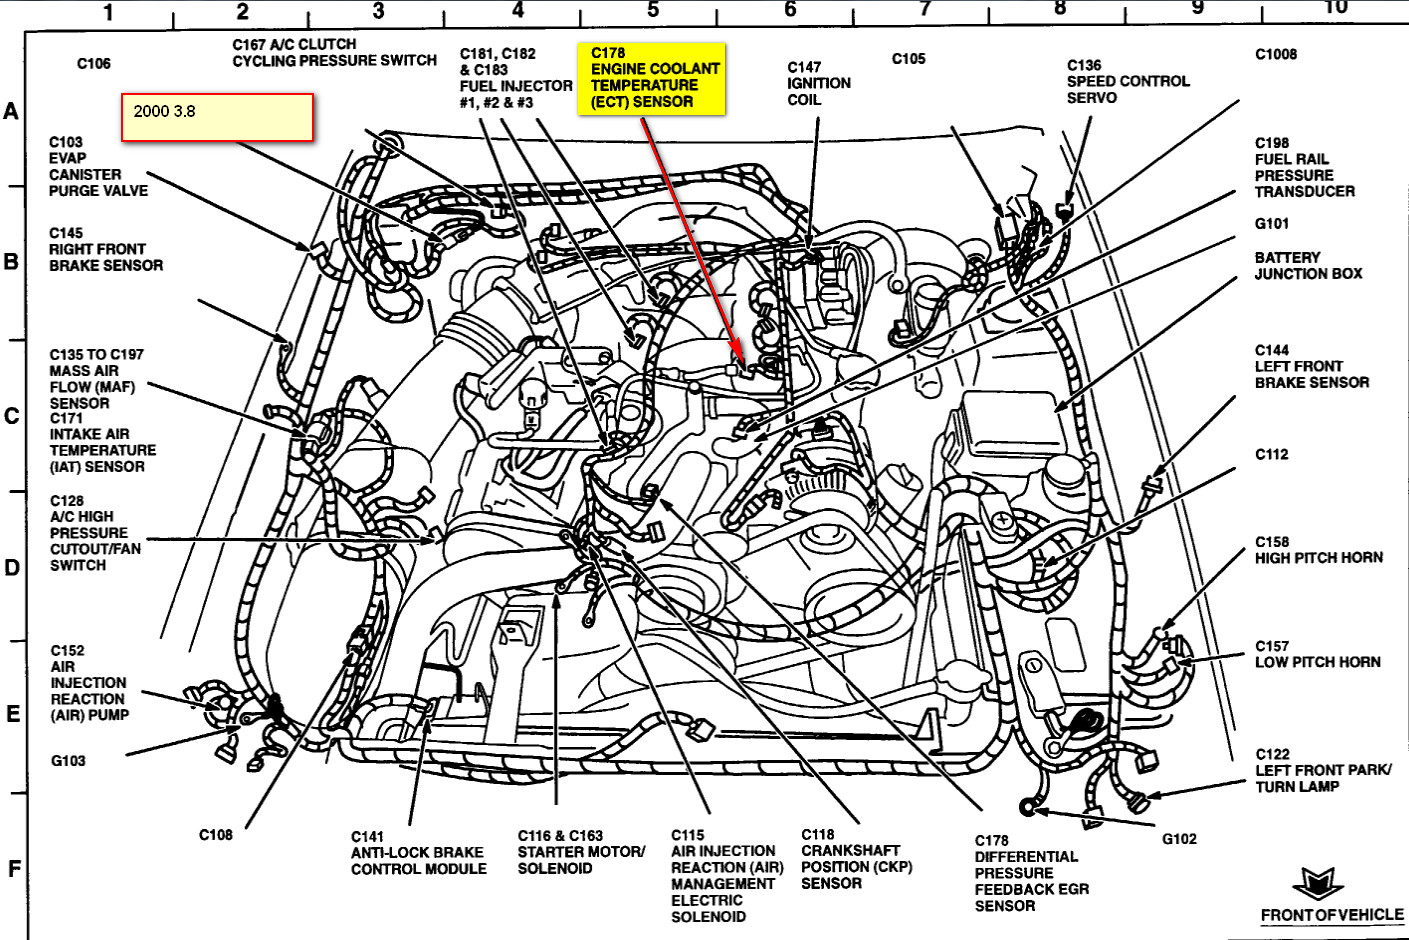 1991 Mazda Miata Engine Diagram Simple Guide About Wiring Egr Fuse 3800 Temperature Sensor Location Free